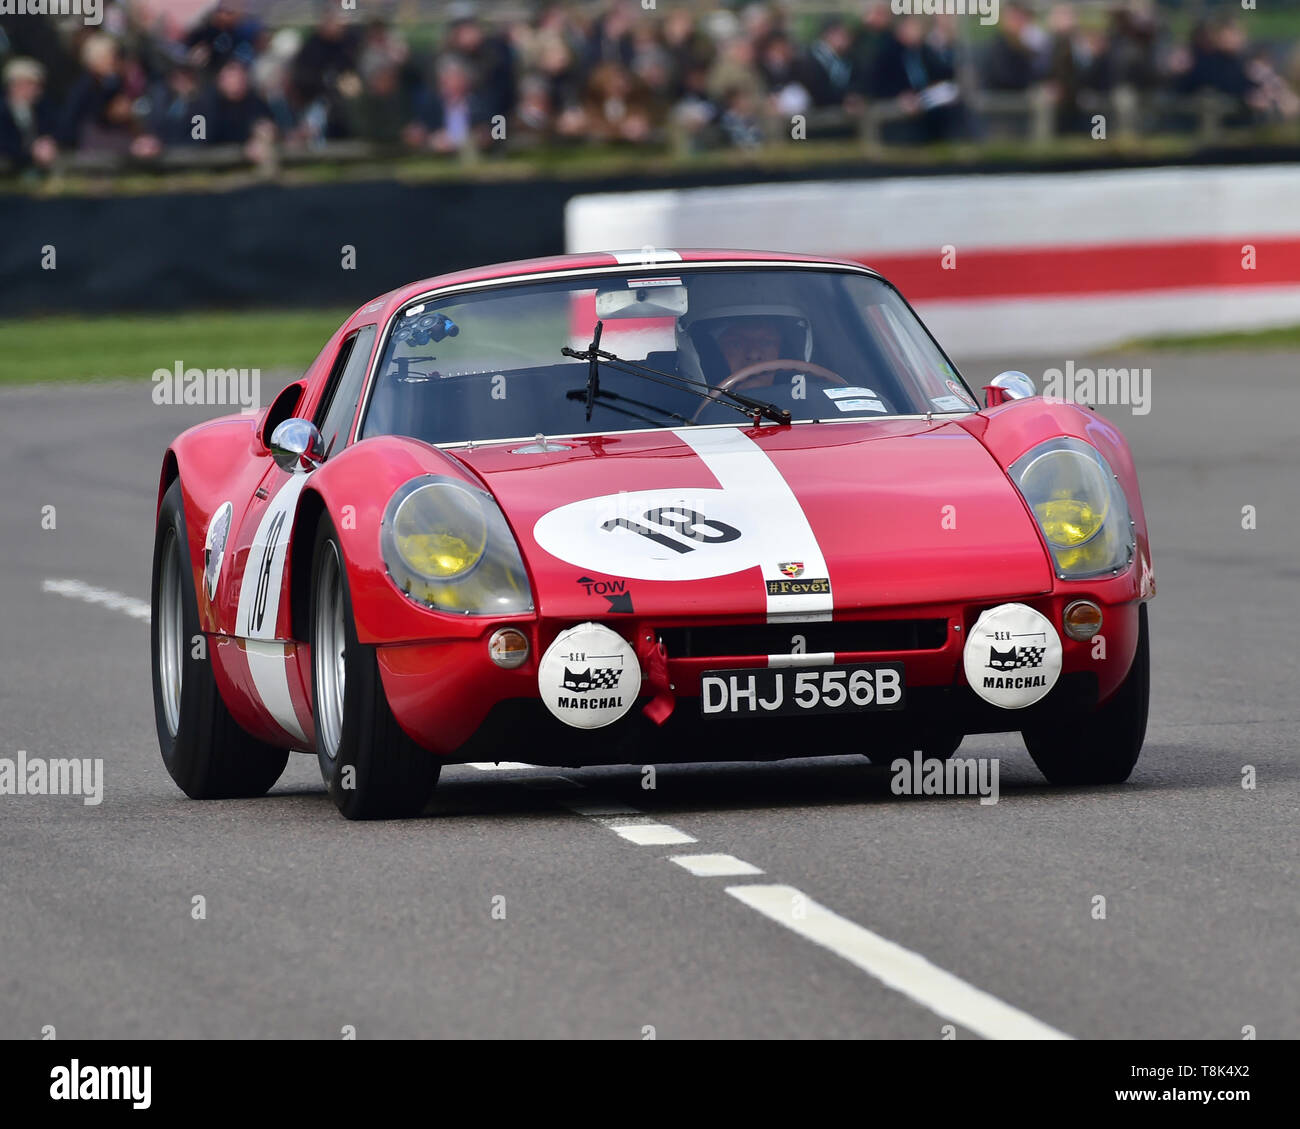 Richard Attwood, Rainer Becker, Porsche 904 Carrera GTS, Graham Hill Trophy, Closed cockpit GT cars, Prototype cars, Spirit of the RAC TT Races 1960-1 - Stock Image